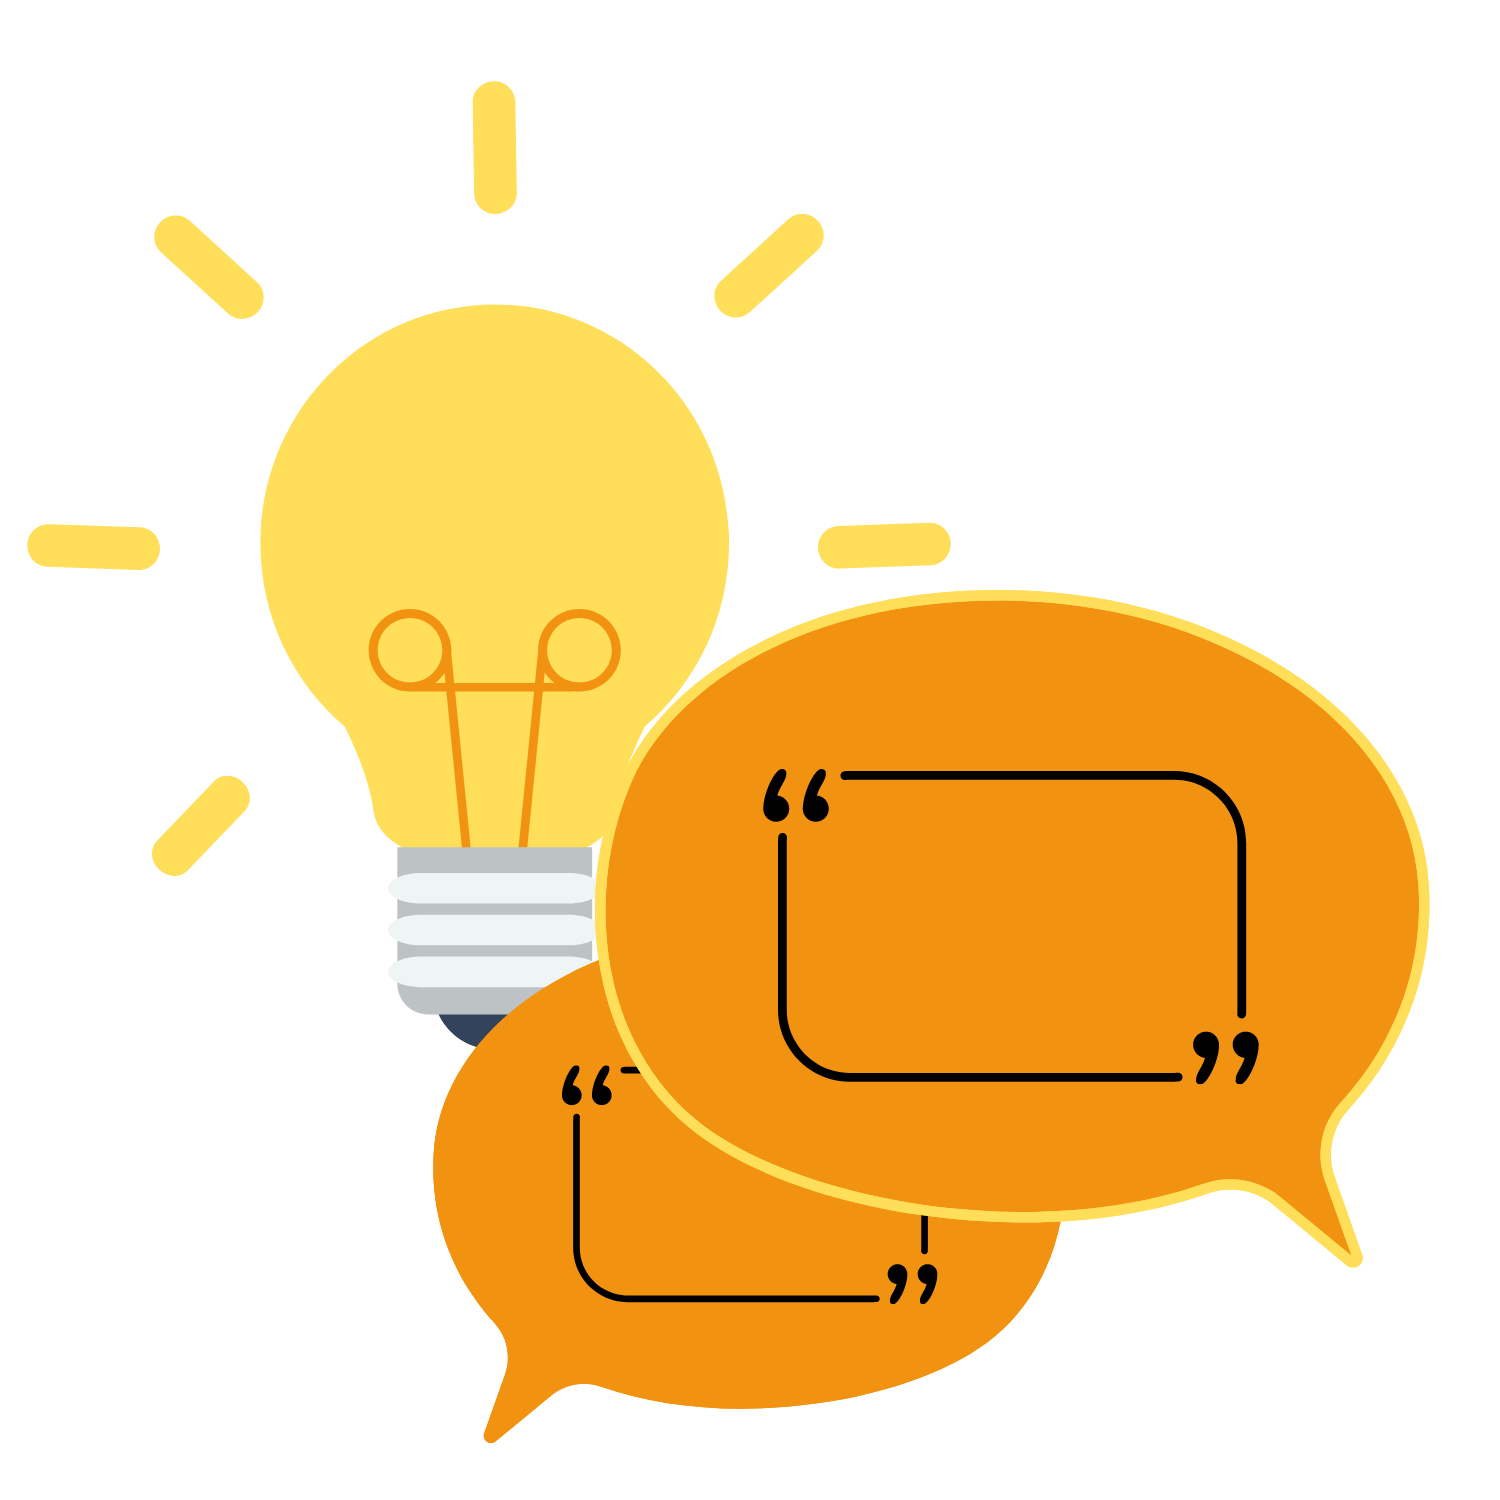 Ideas and Words (light bulb and speech bubble graphic)